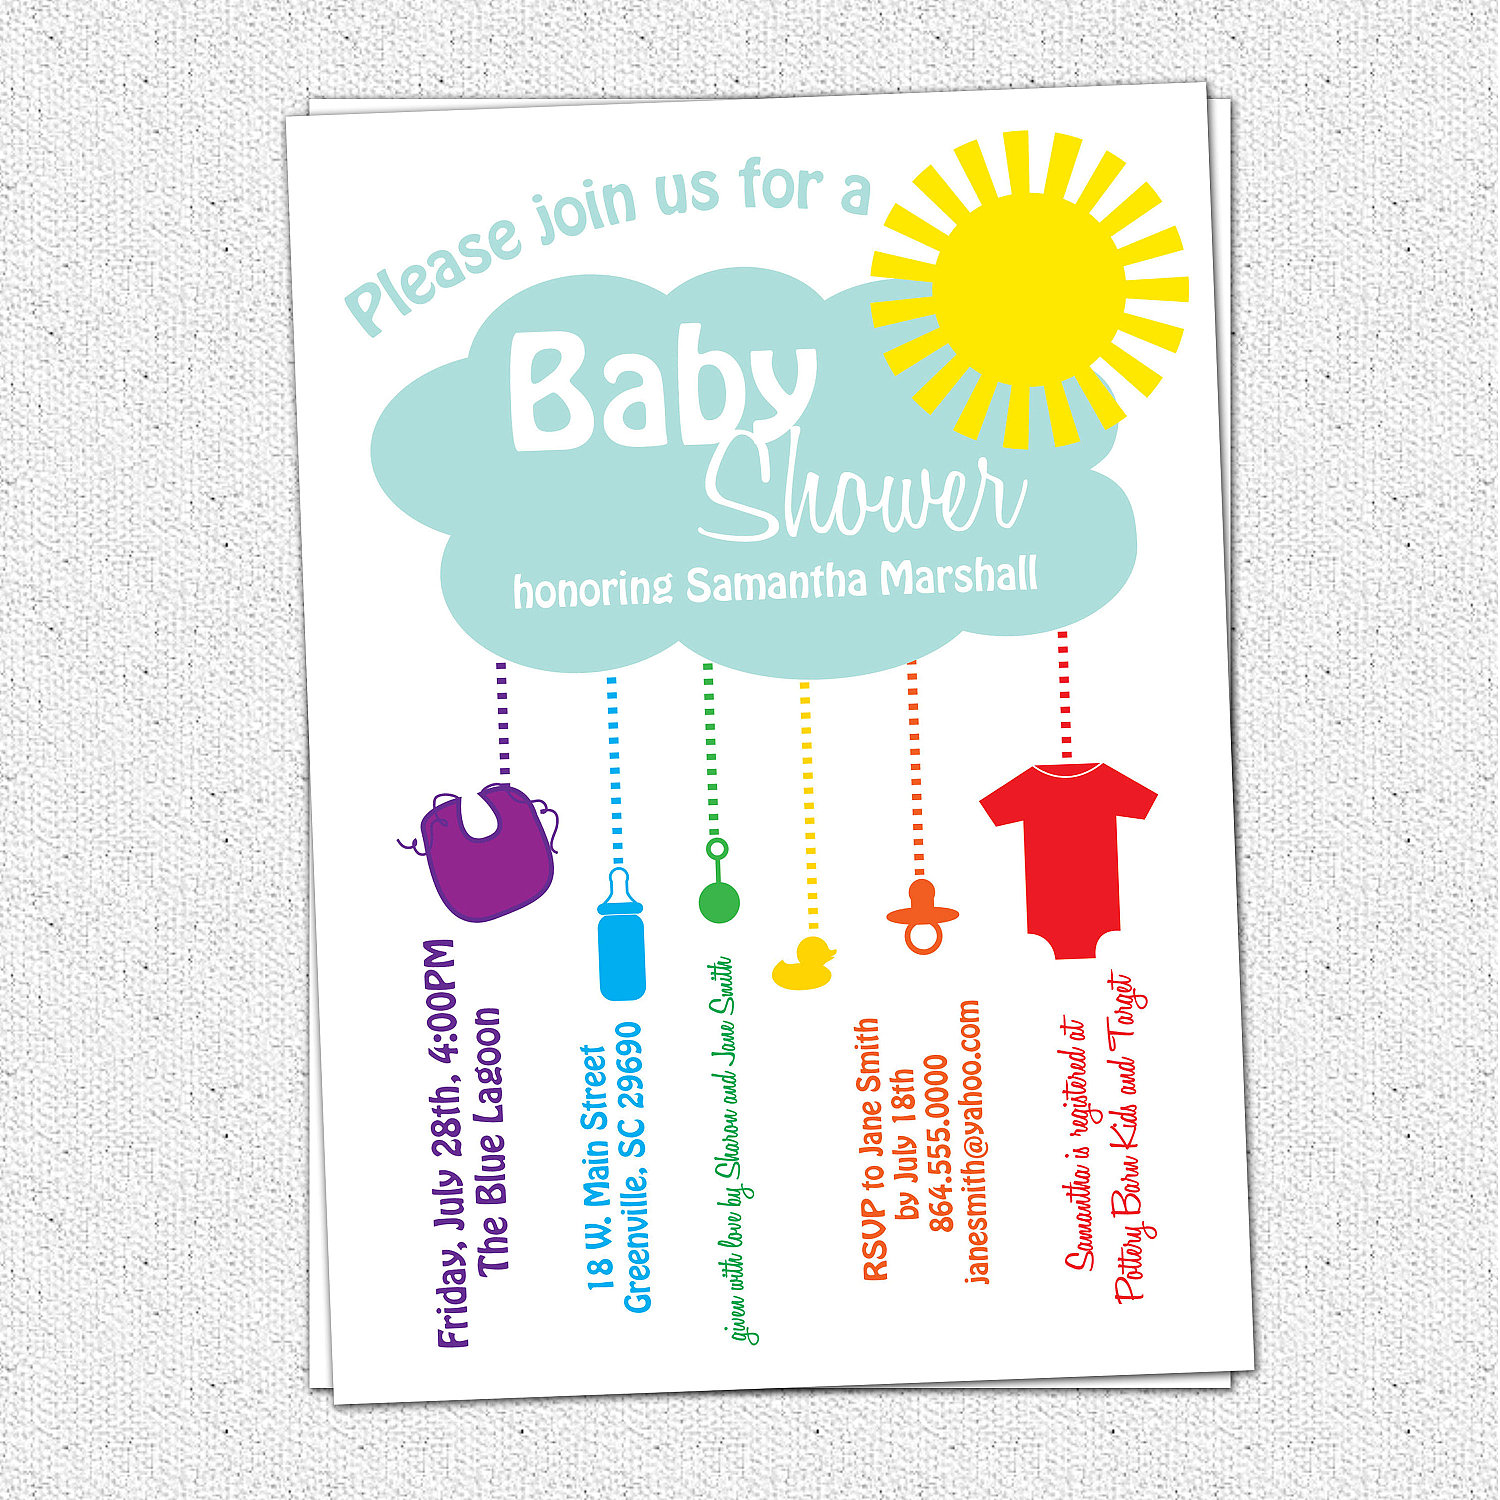 Baby shower invitations rain cloud sunshine rainbow gender baby shower invitations rain cloud sunshine rainbow gender neutral boy filmwisefo